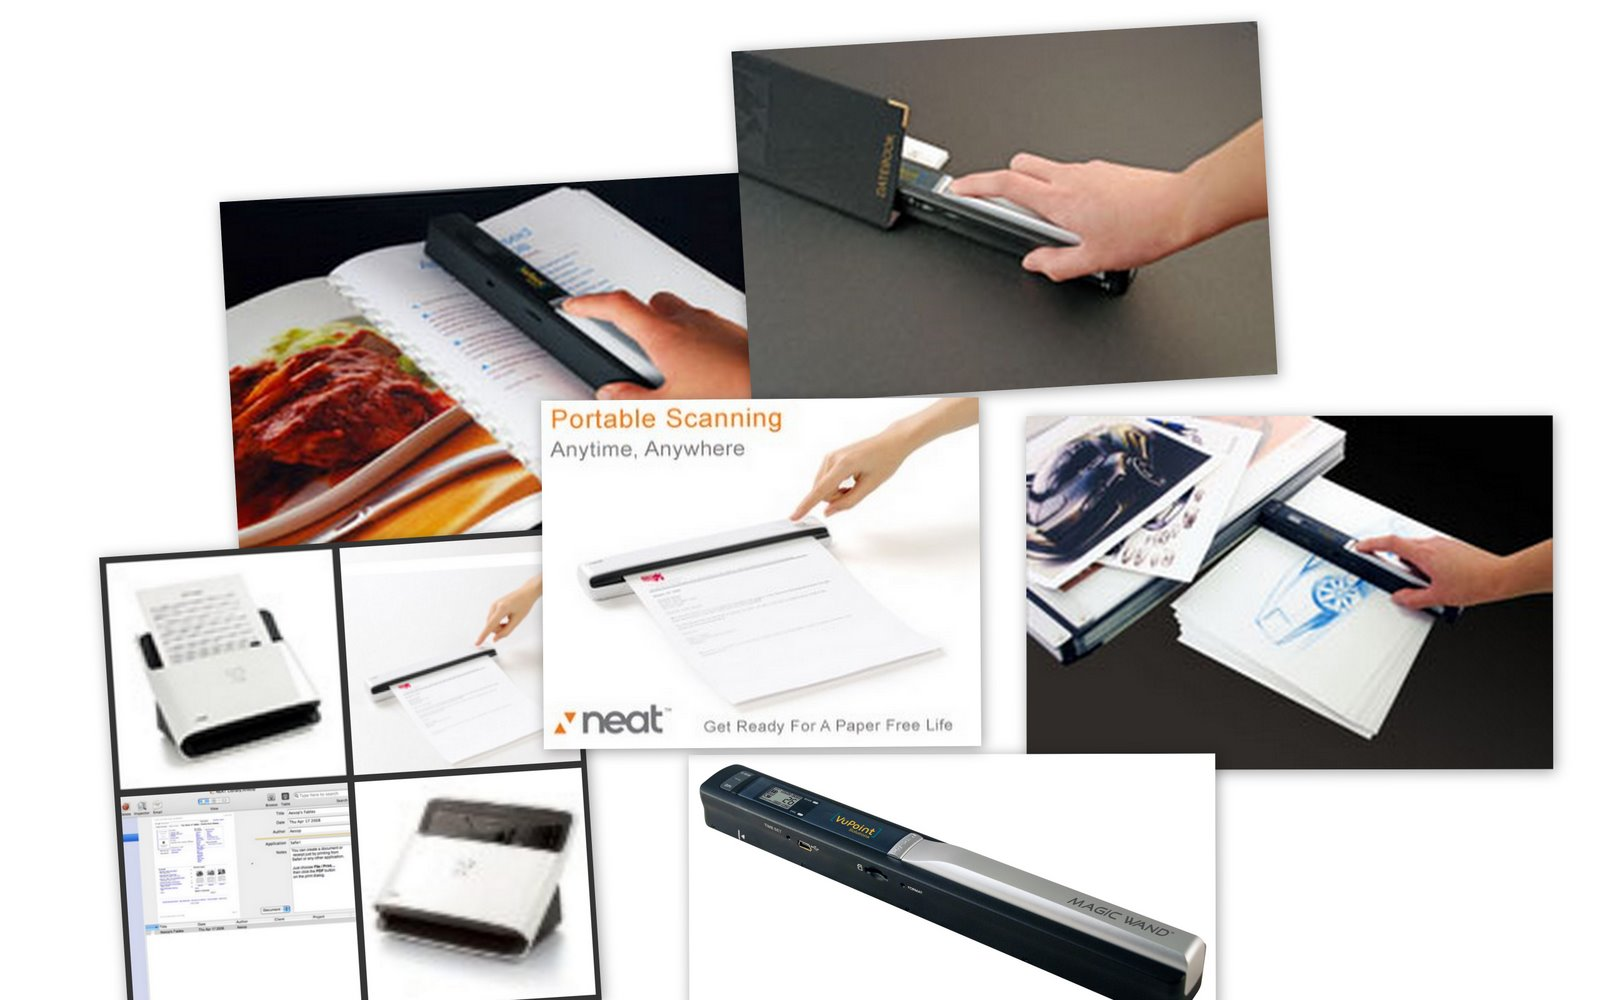 Honda Odyssey Invoice Neat Scanner  Vupoint Magic Wand Bookstore Receipt Excel with Invoice Versus Msrp The Neat Desk And Neat Receipts Is The Best Bet For Going Green And Lean  With A Switch To Digital Filing Sample Invoices In Excel Word